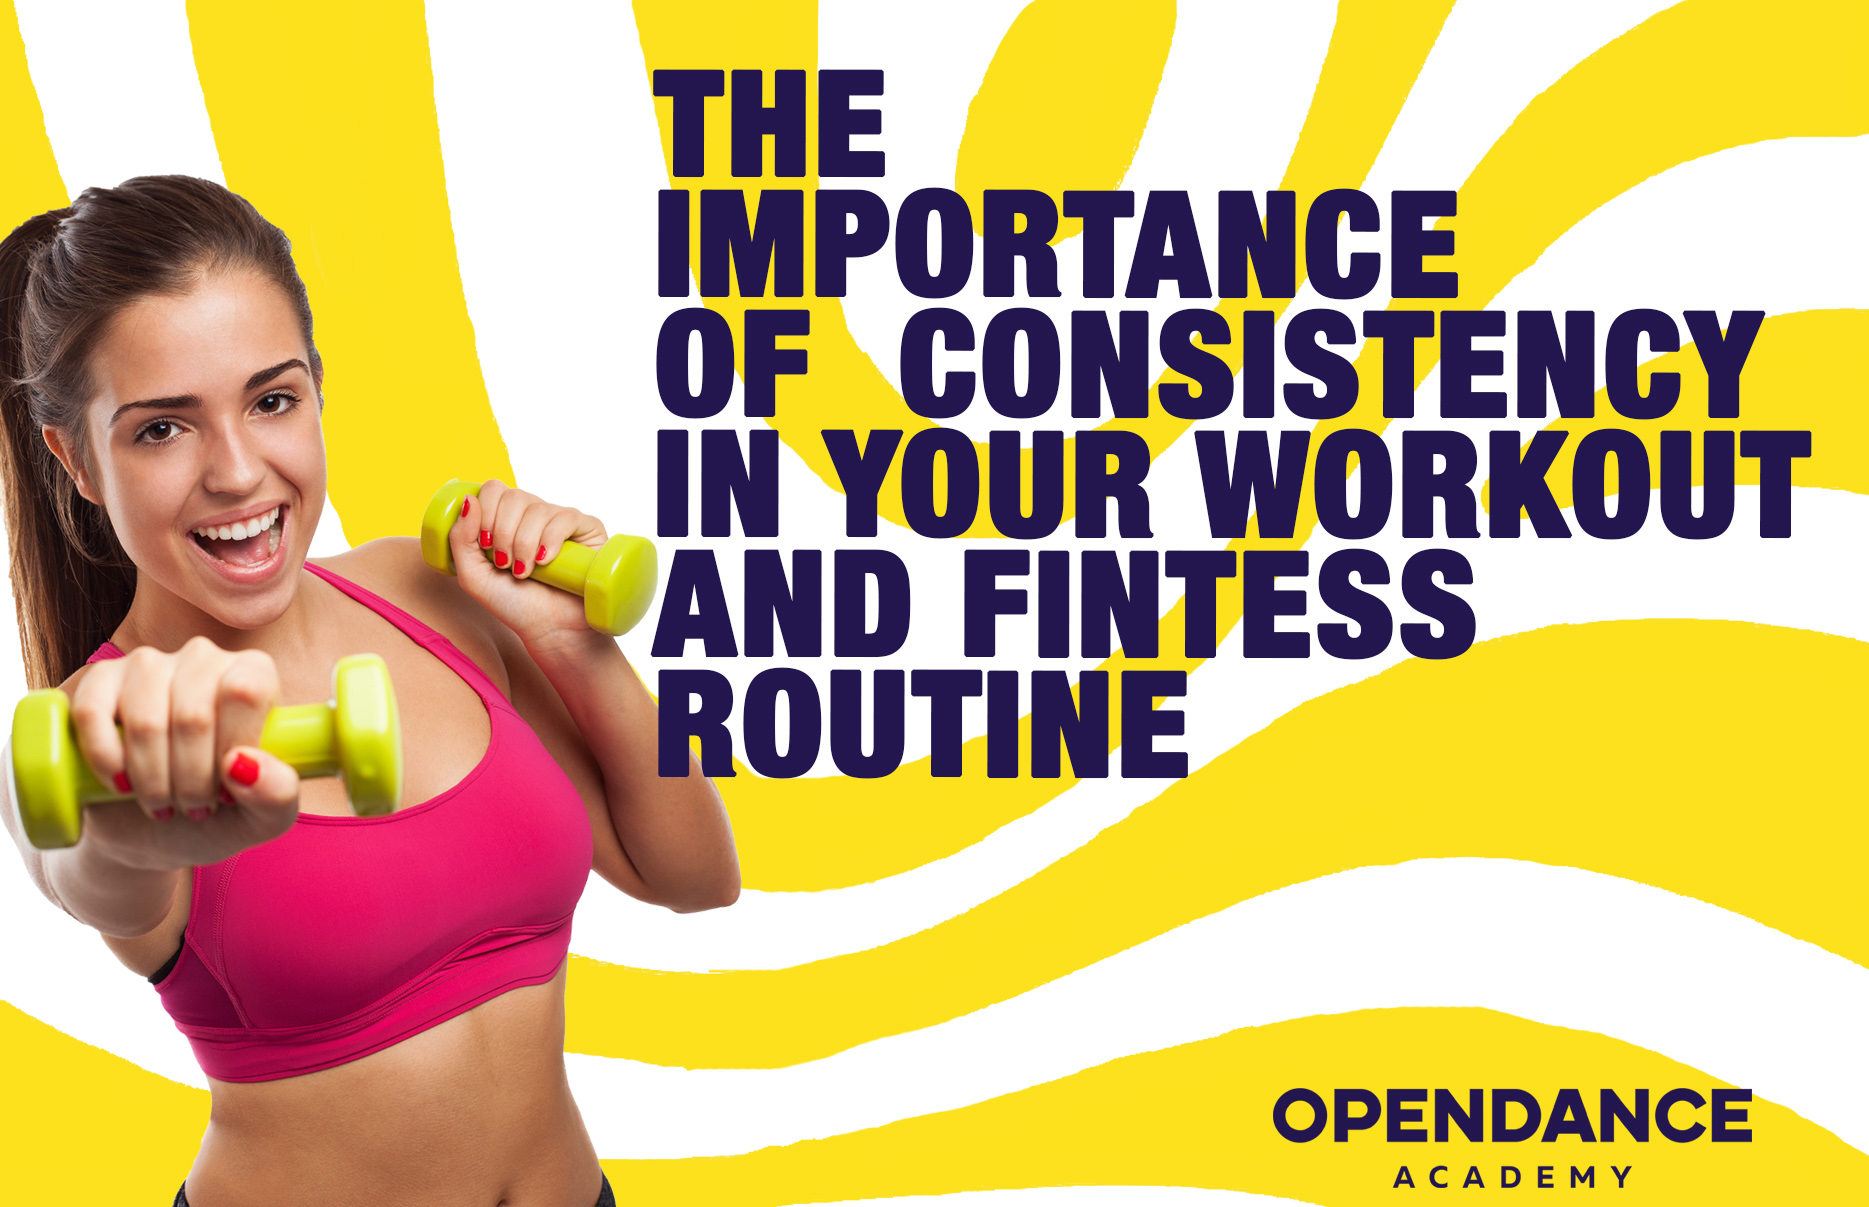 The Importance of Consistency in Your Workout and Fitness Routines